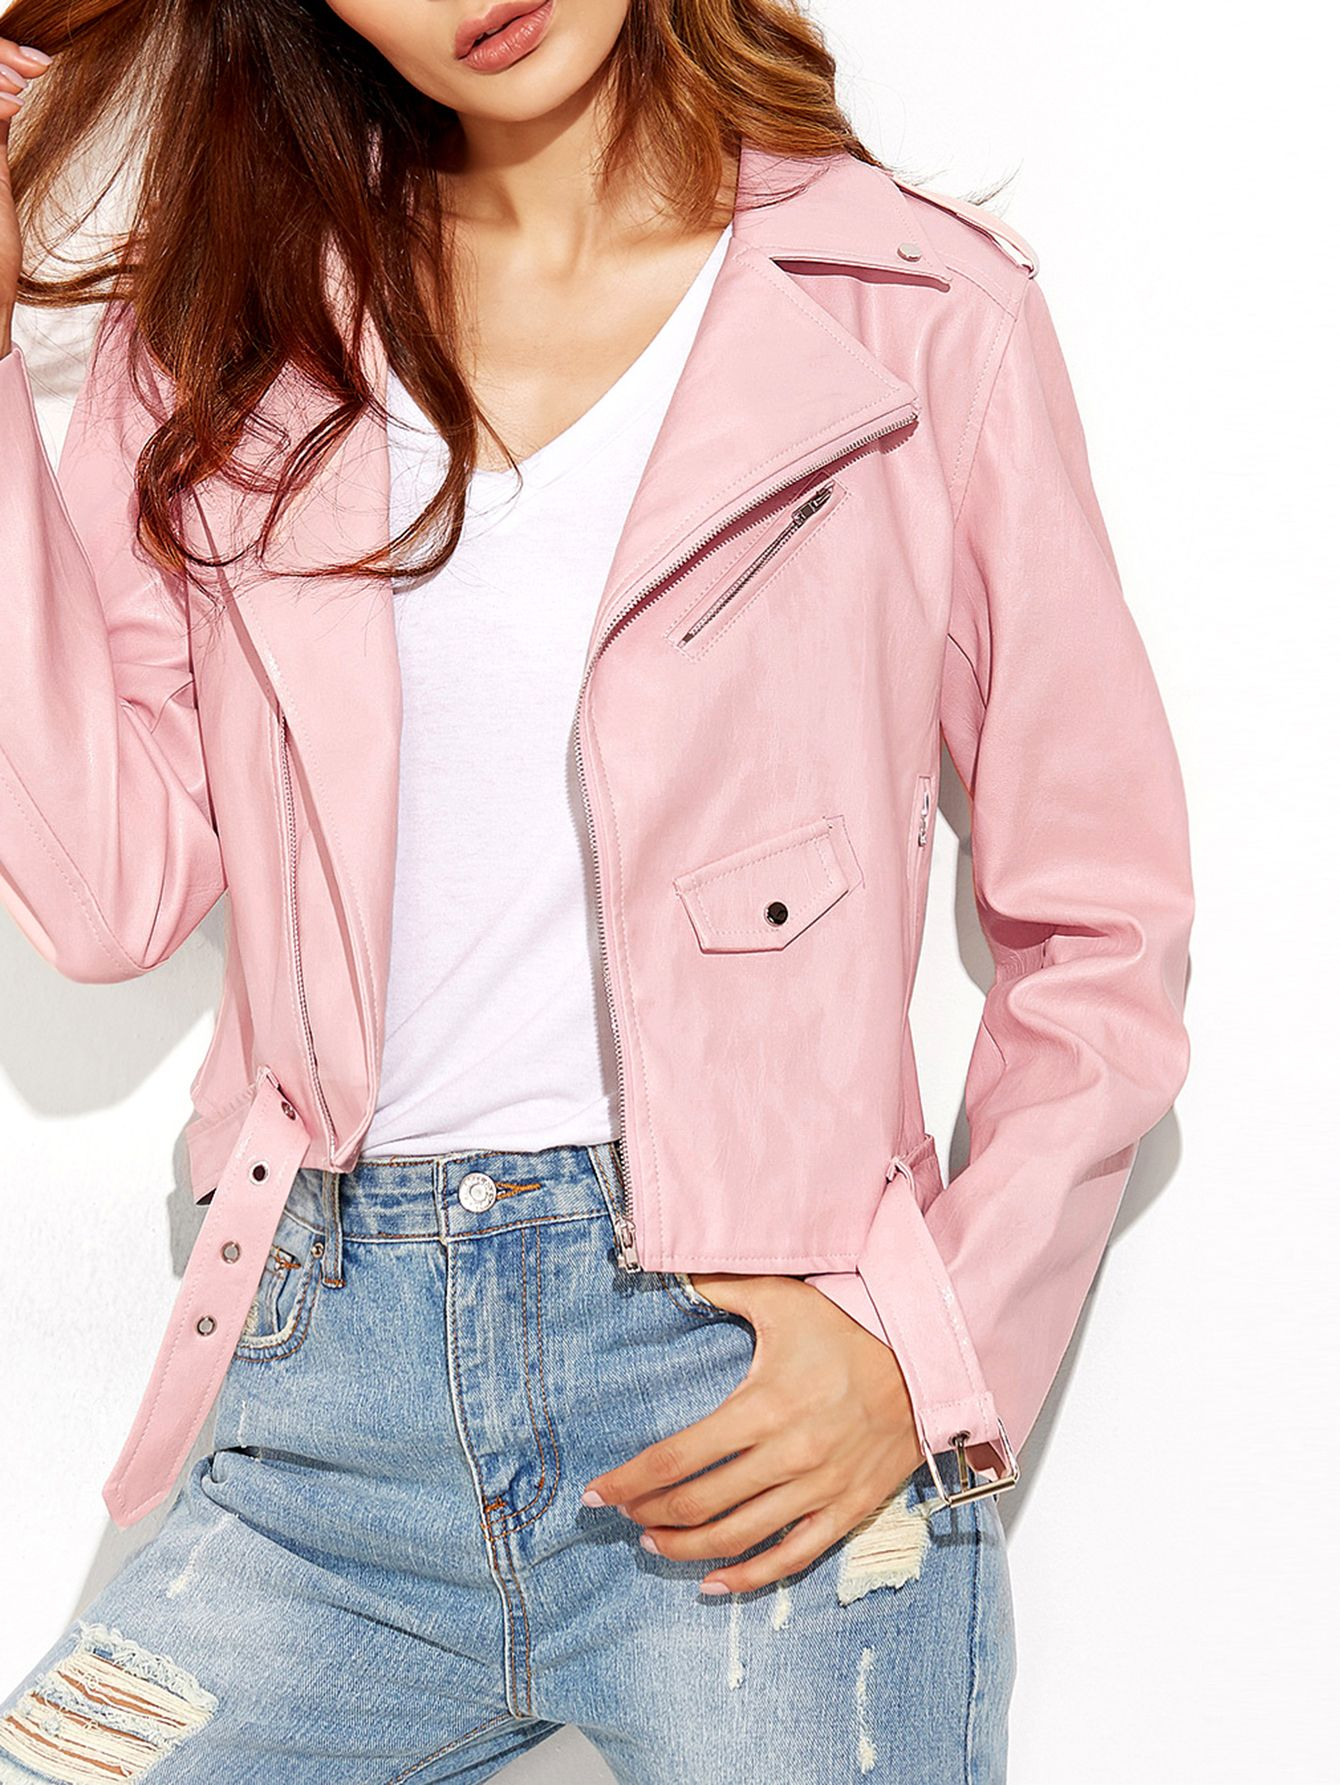 c9ea0eadf Shop Pink Faux Leather Asymmetric Zip Biker Jacket online. SheIn ...